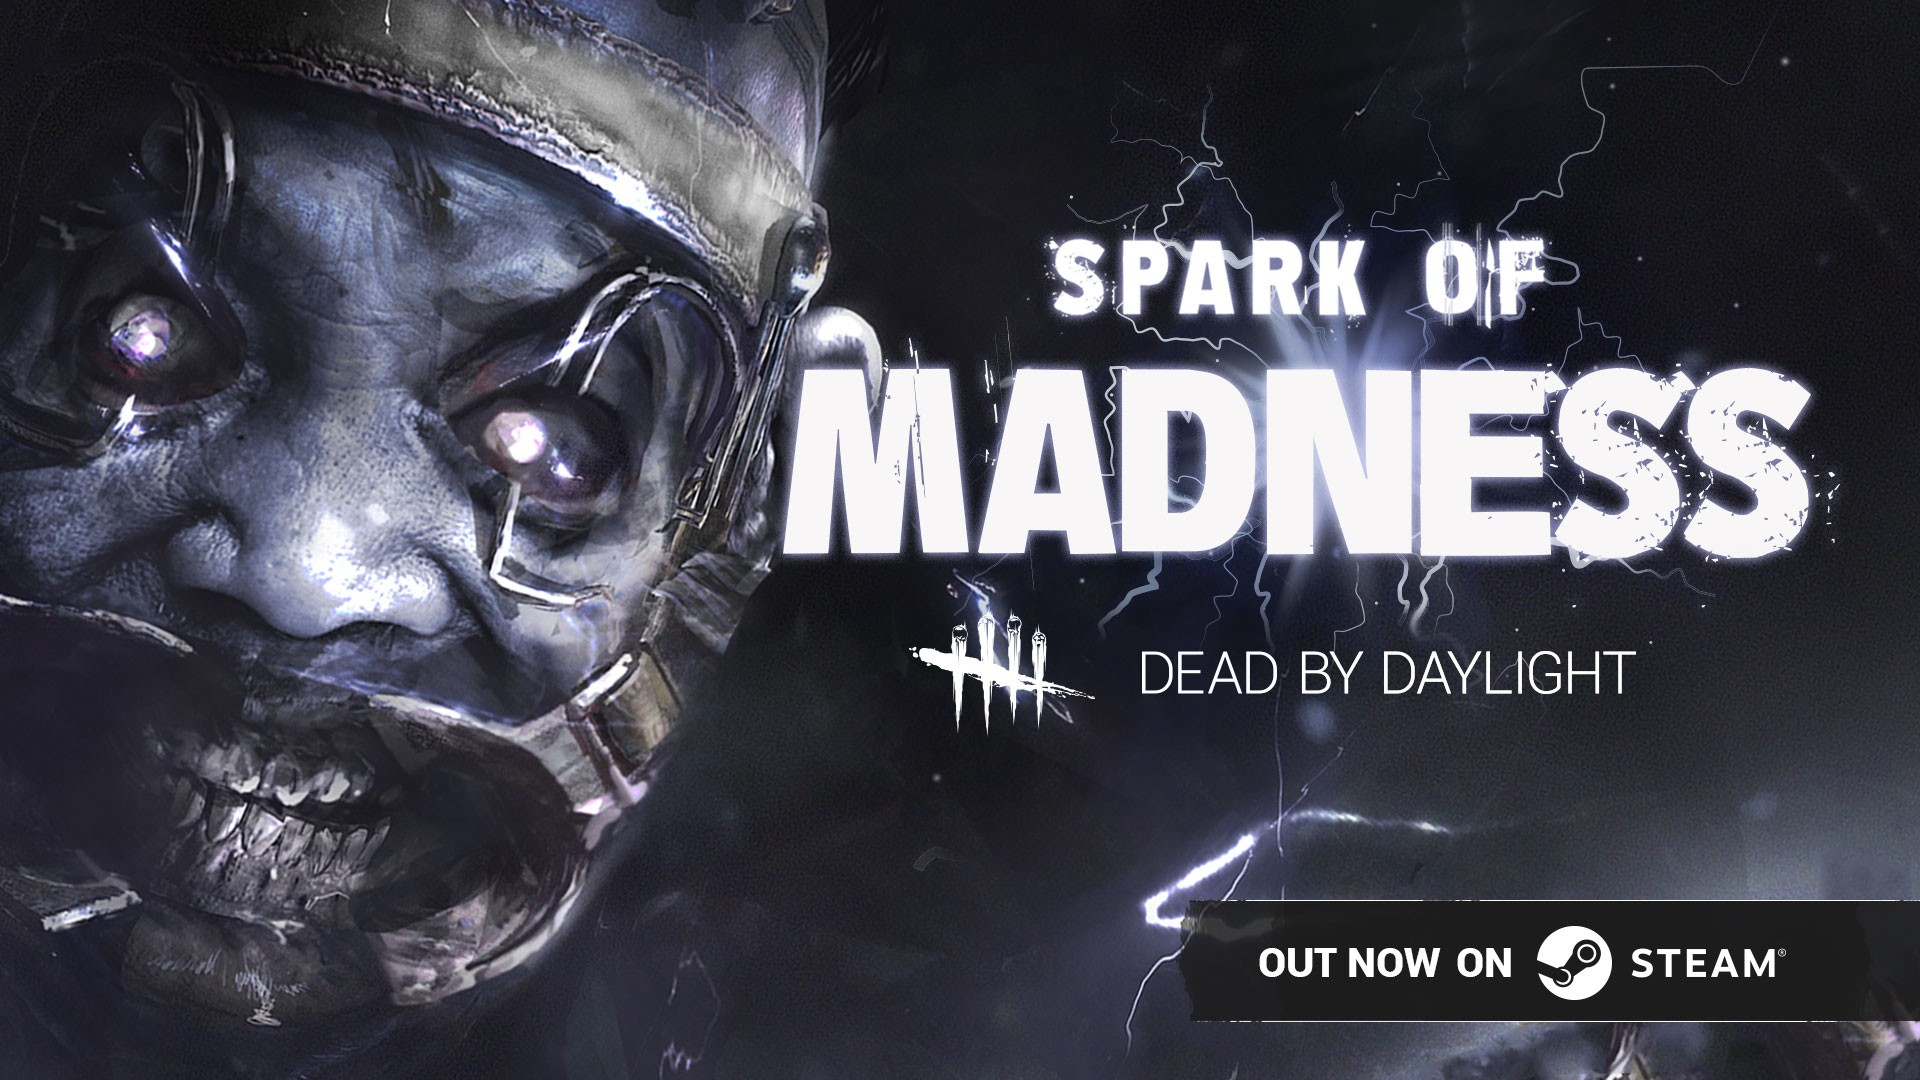 Dead by Daylight – New SPARK OF MADNESS Chapter out now on STEAM – introduces new Killer, Survivor and Map